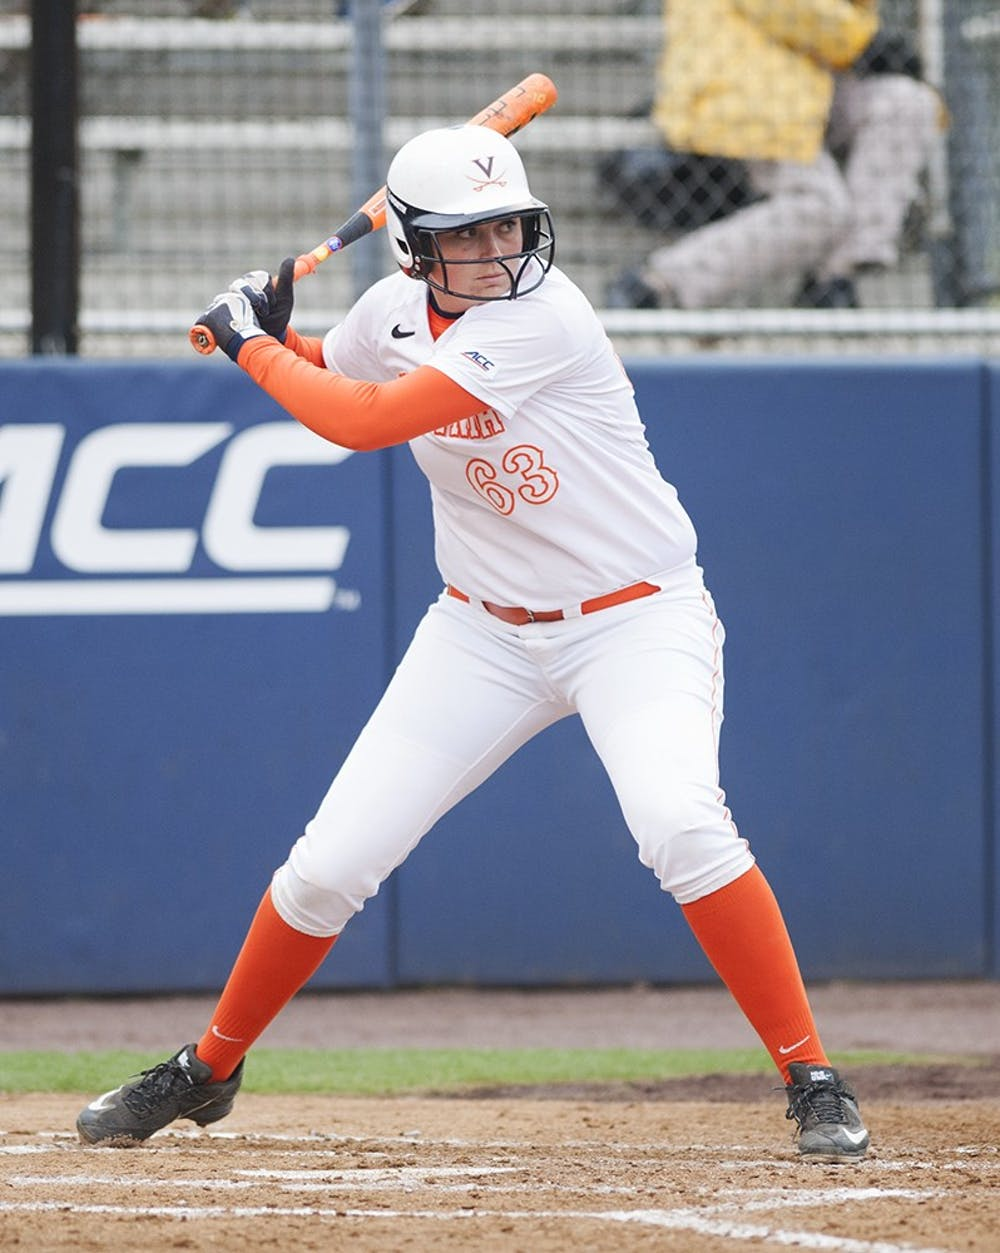 <p>Junior first baseman Danni Ingraham hit two home runs to lead Virginia to a win over Georgetown on Tuesday.</p>